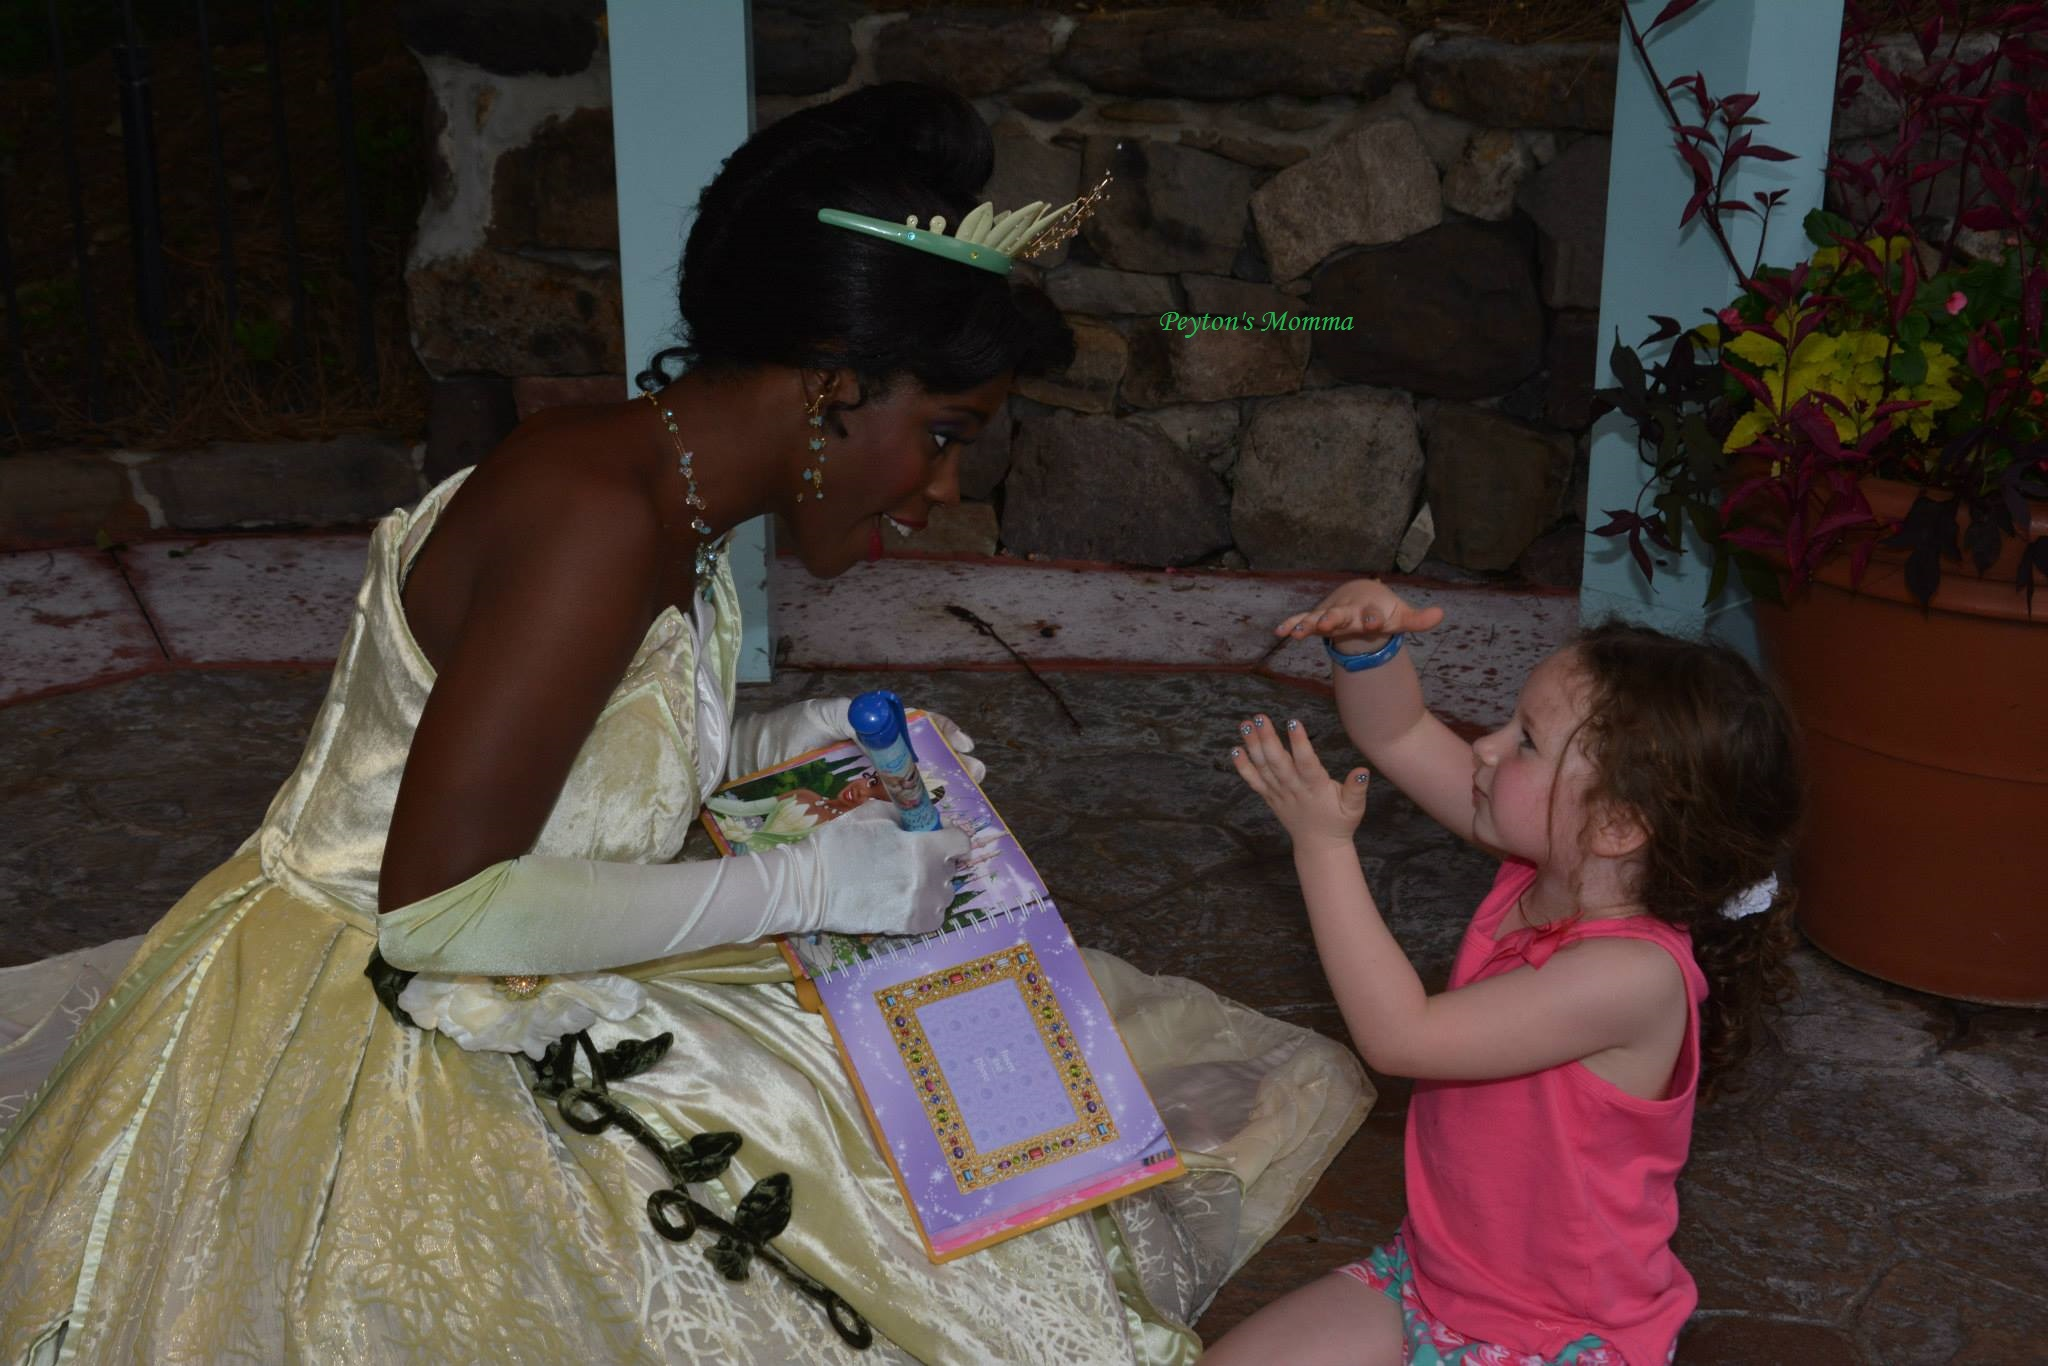 Peyton telling stories to Tiana